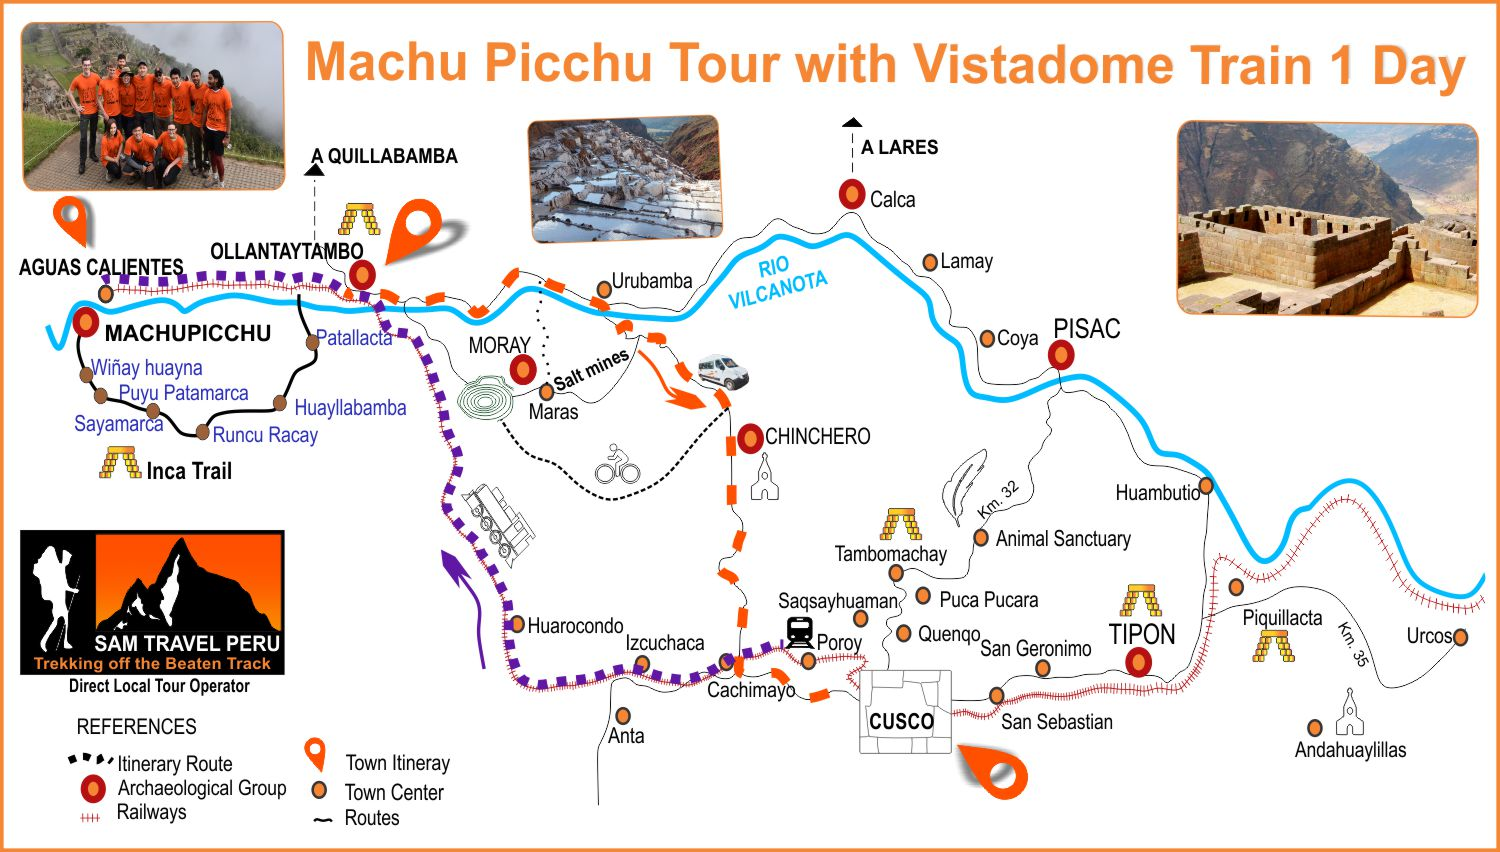 Machu Picchu Tour with Vistadome Train 1 Day